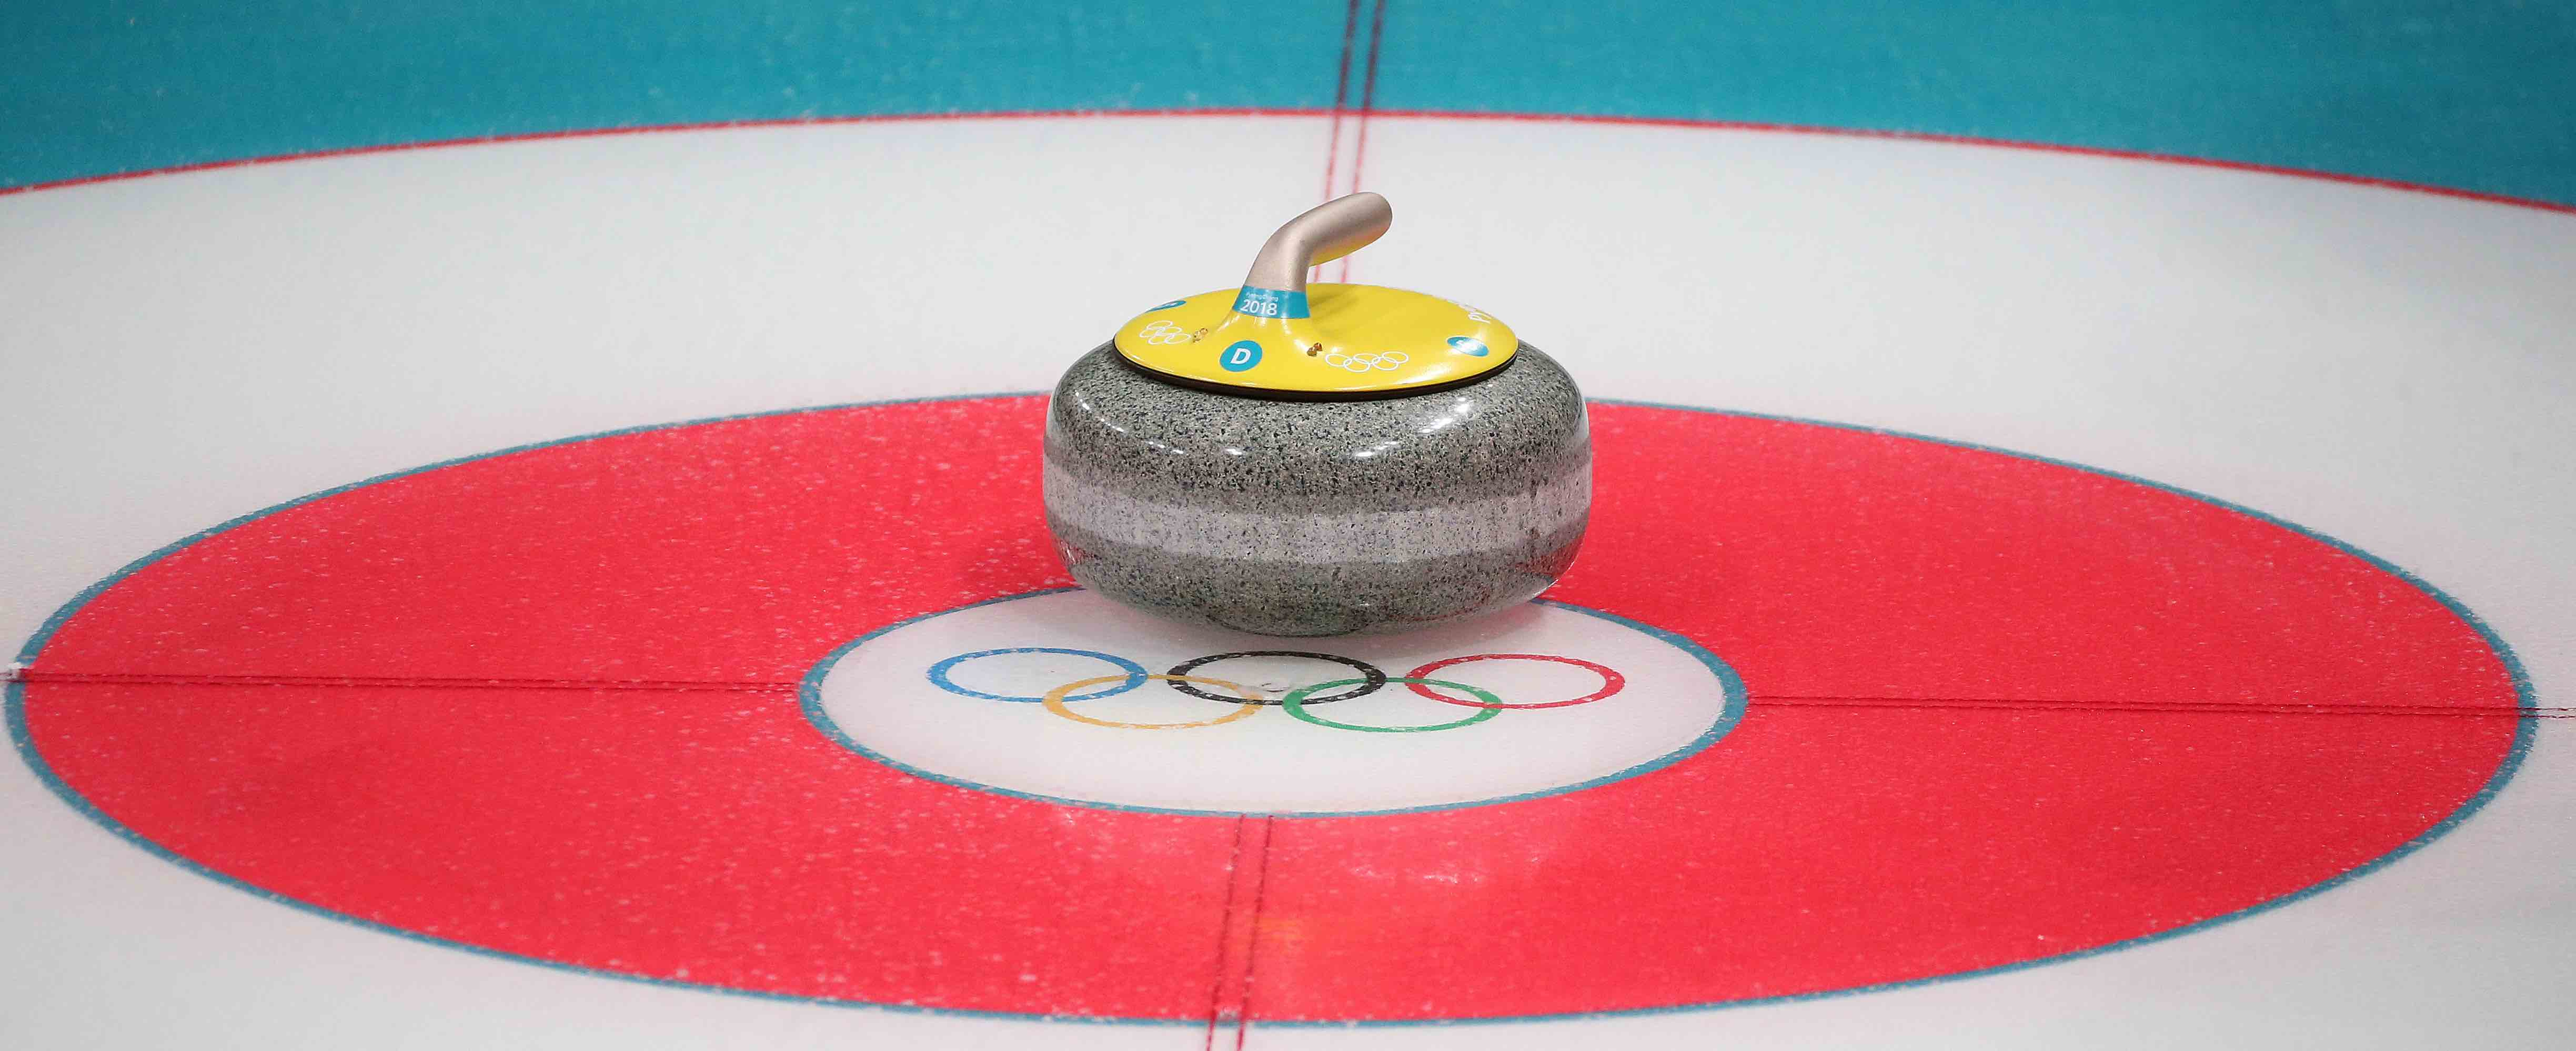 Curling at the PyeongChang Winter Olympics (Photo: Steve Russell/Getty)